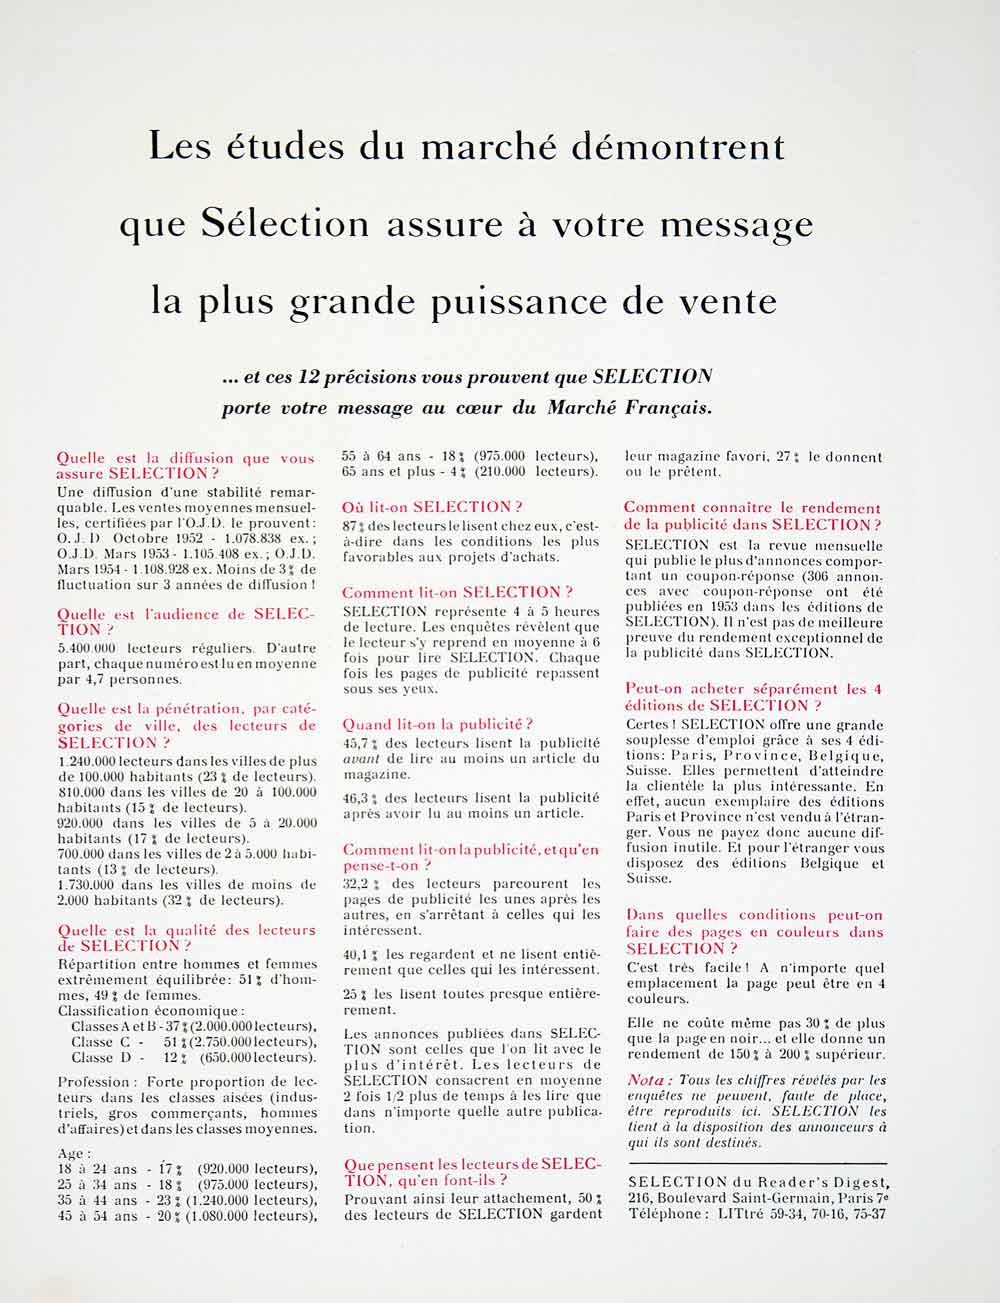 1955 Ad Georges Lissac Selection Readers Digest Suit French 216 Bld St VEN2